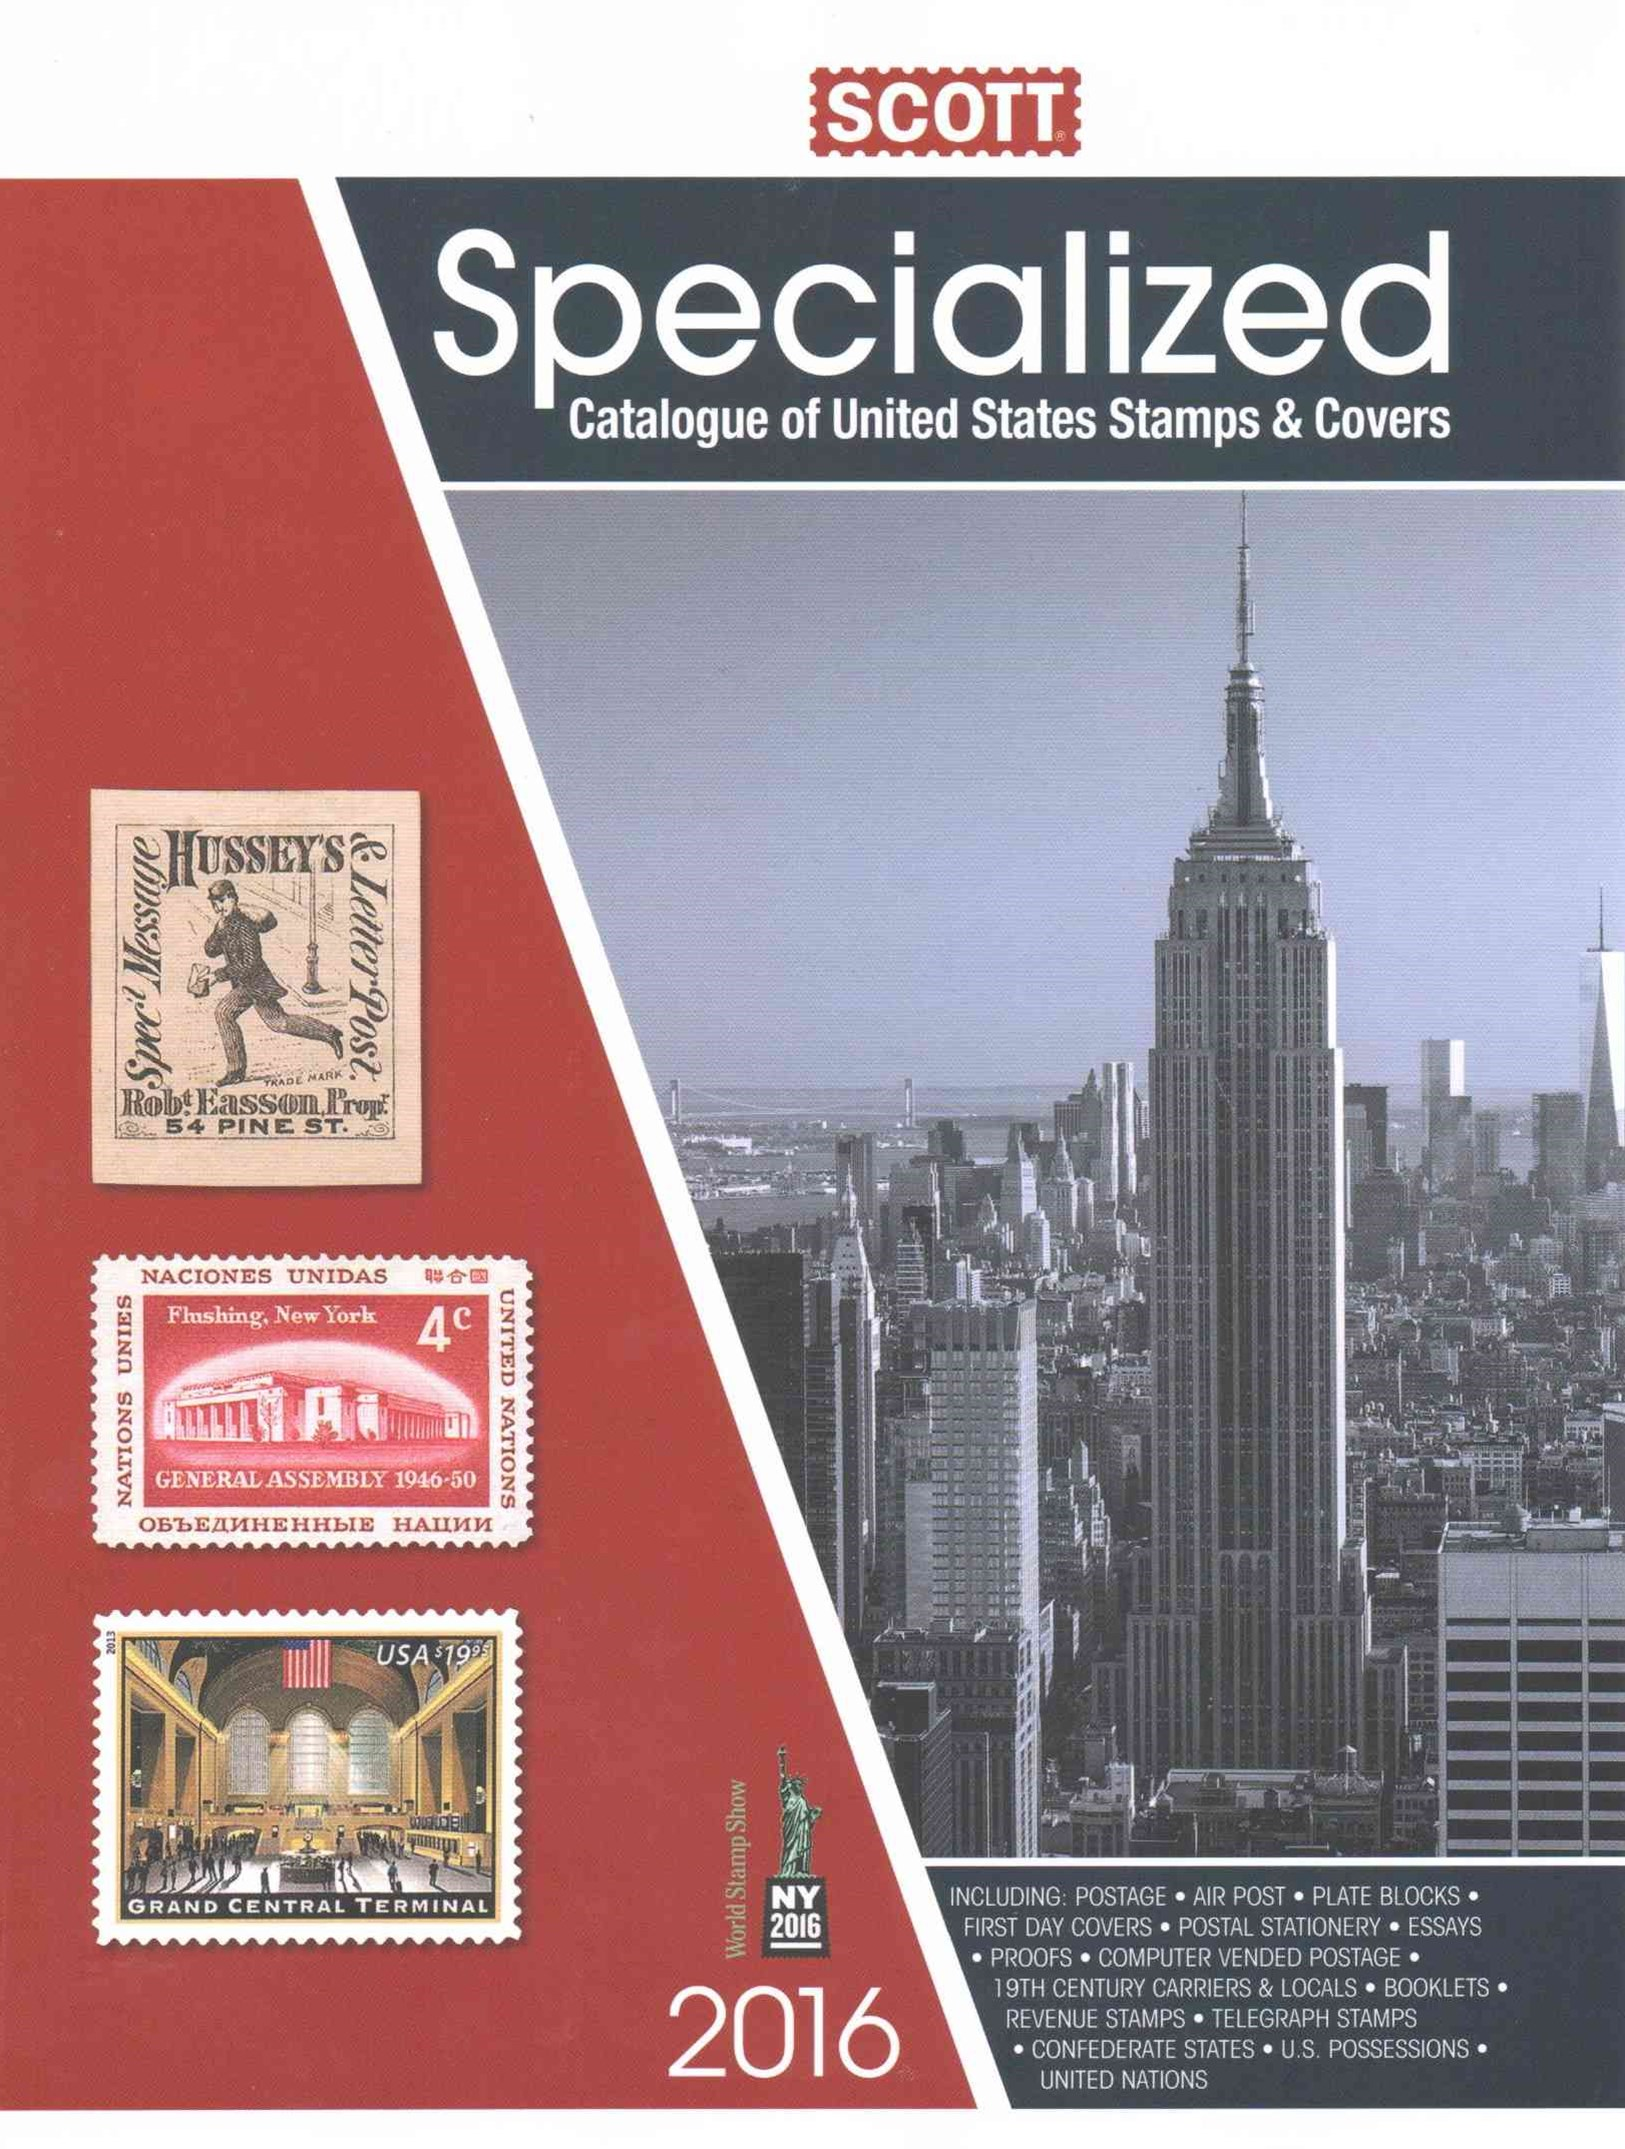 2016 Scott Specialized Catalogue of United States Stamps and Covers